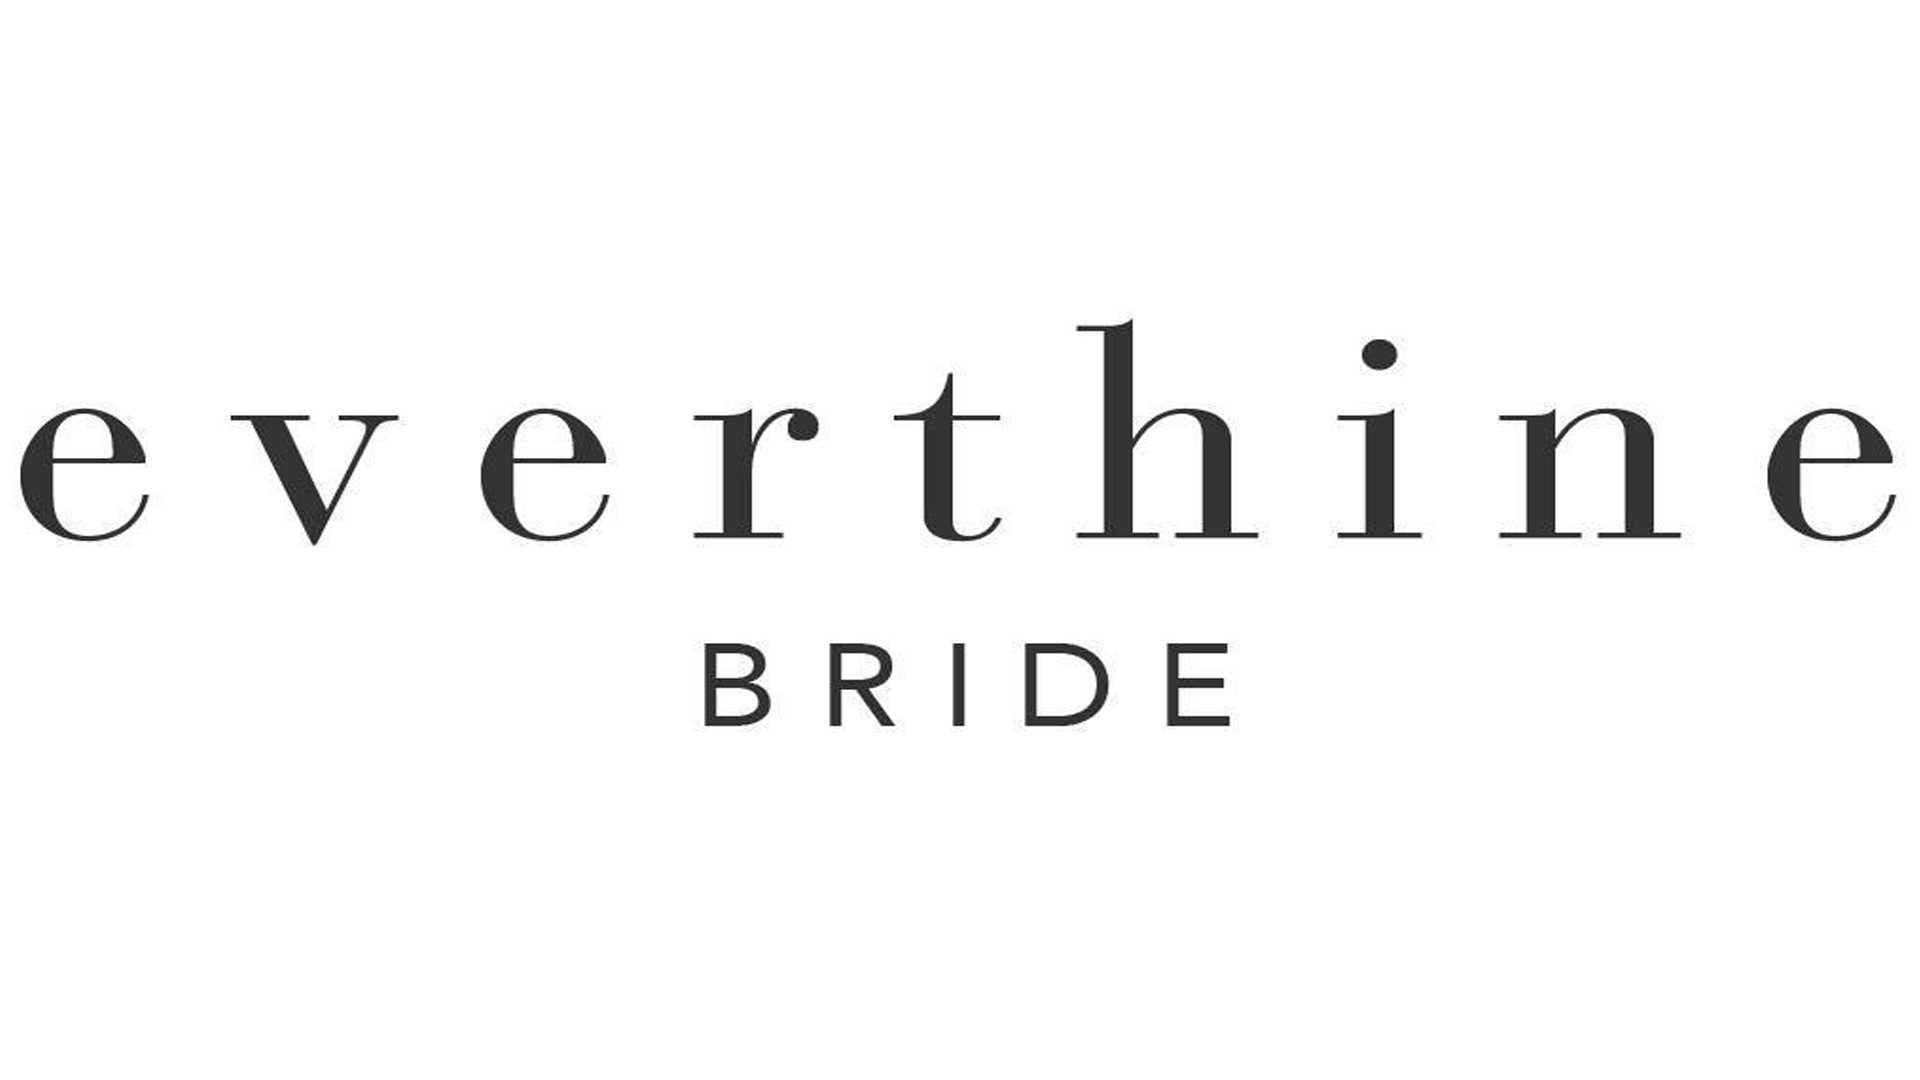 Everthine Bride